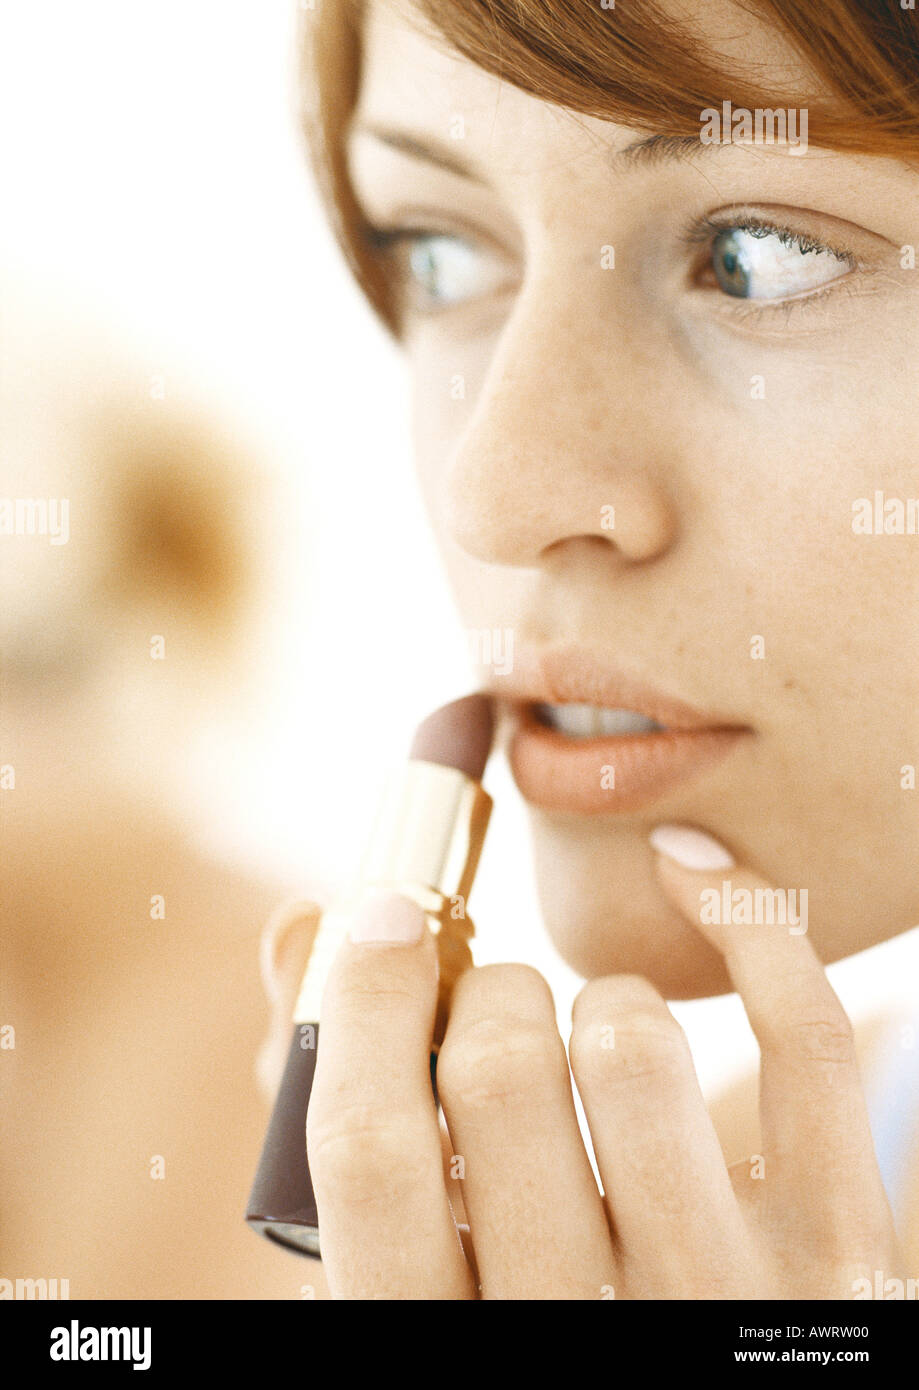 Woman using lipstick, close-up - Stock Image